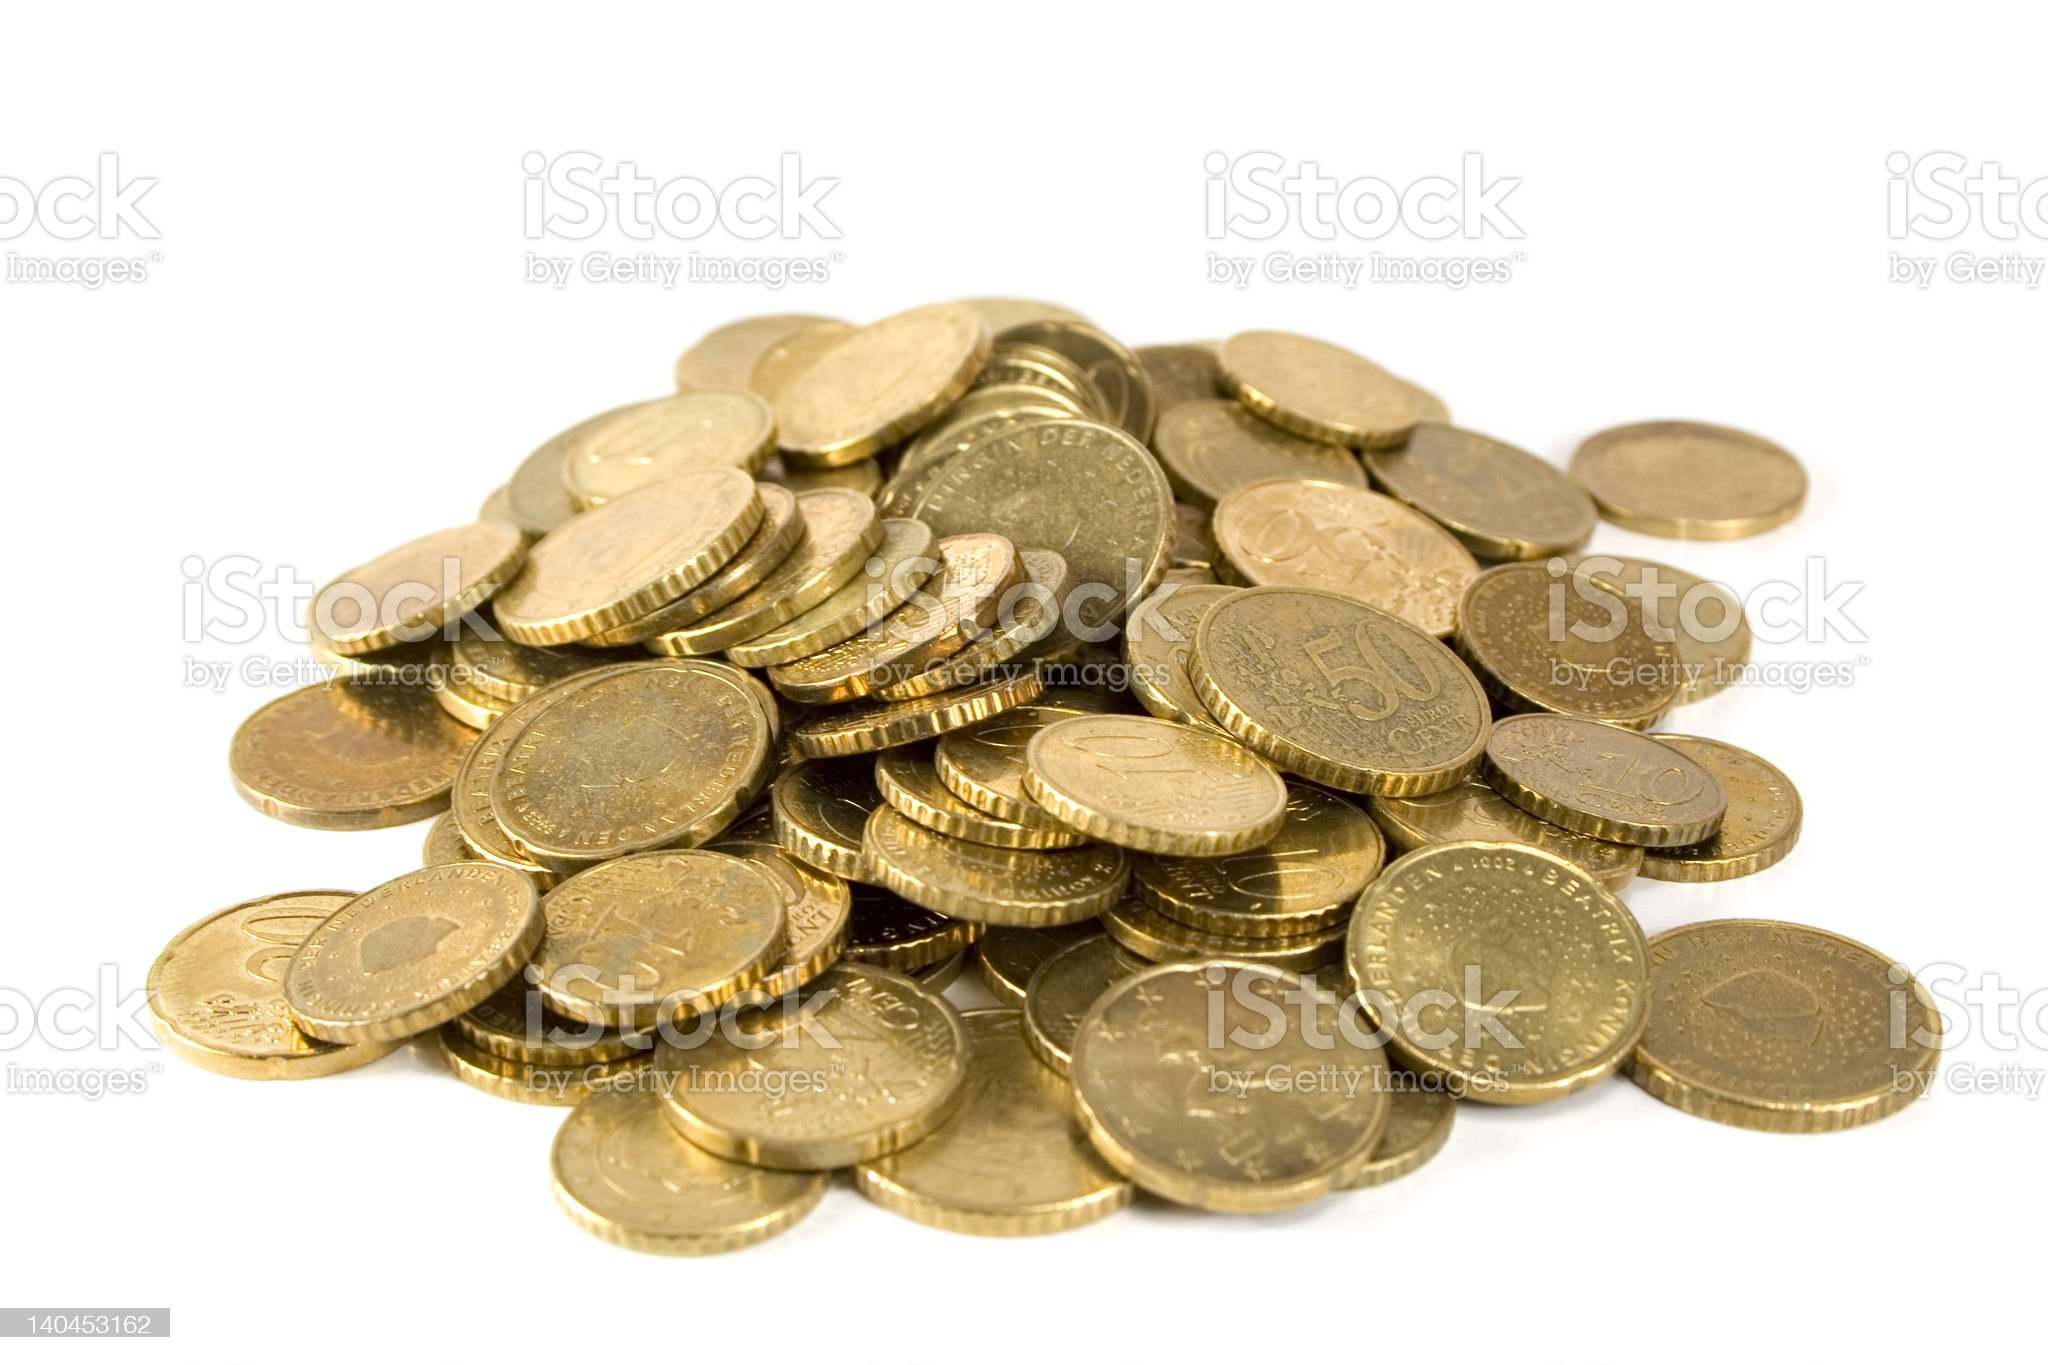 Pile of golden coins royalty-free stock photo